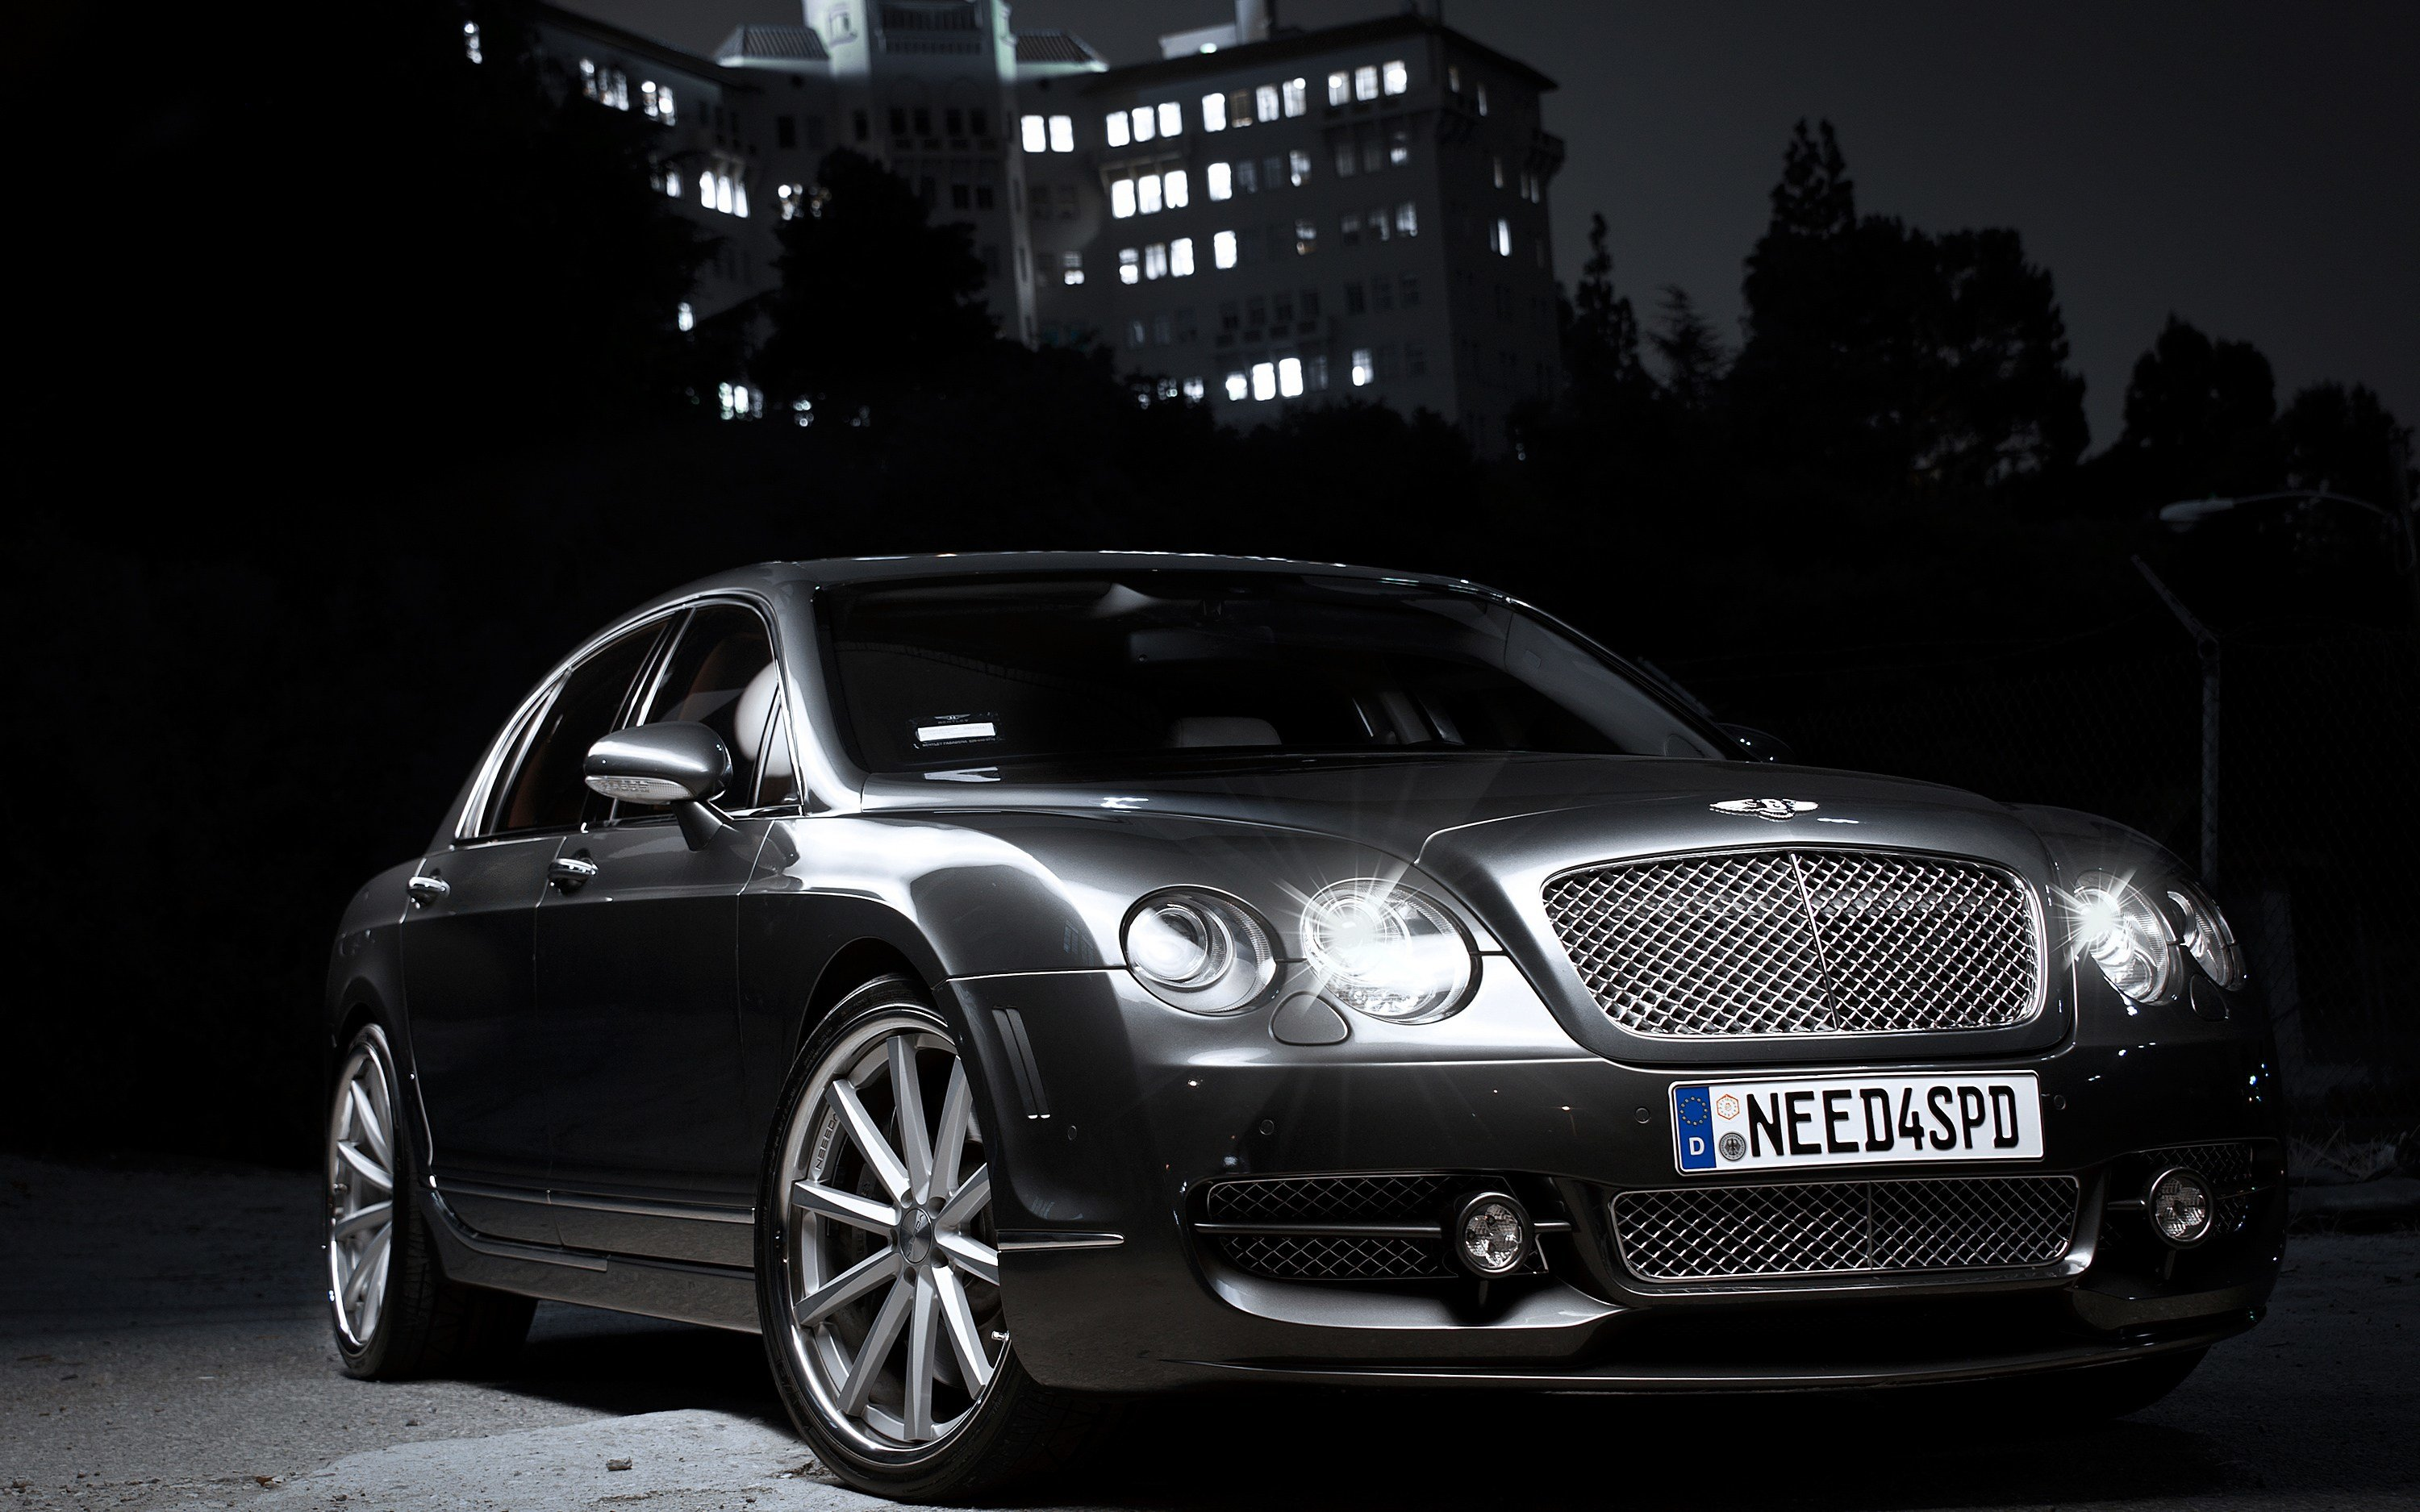 Latest 2012 Bentley Continental Flying Spur Wallpaper Hd Car Free Download